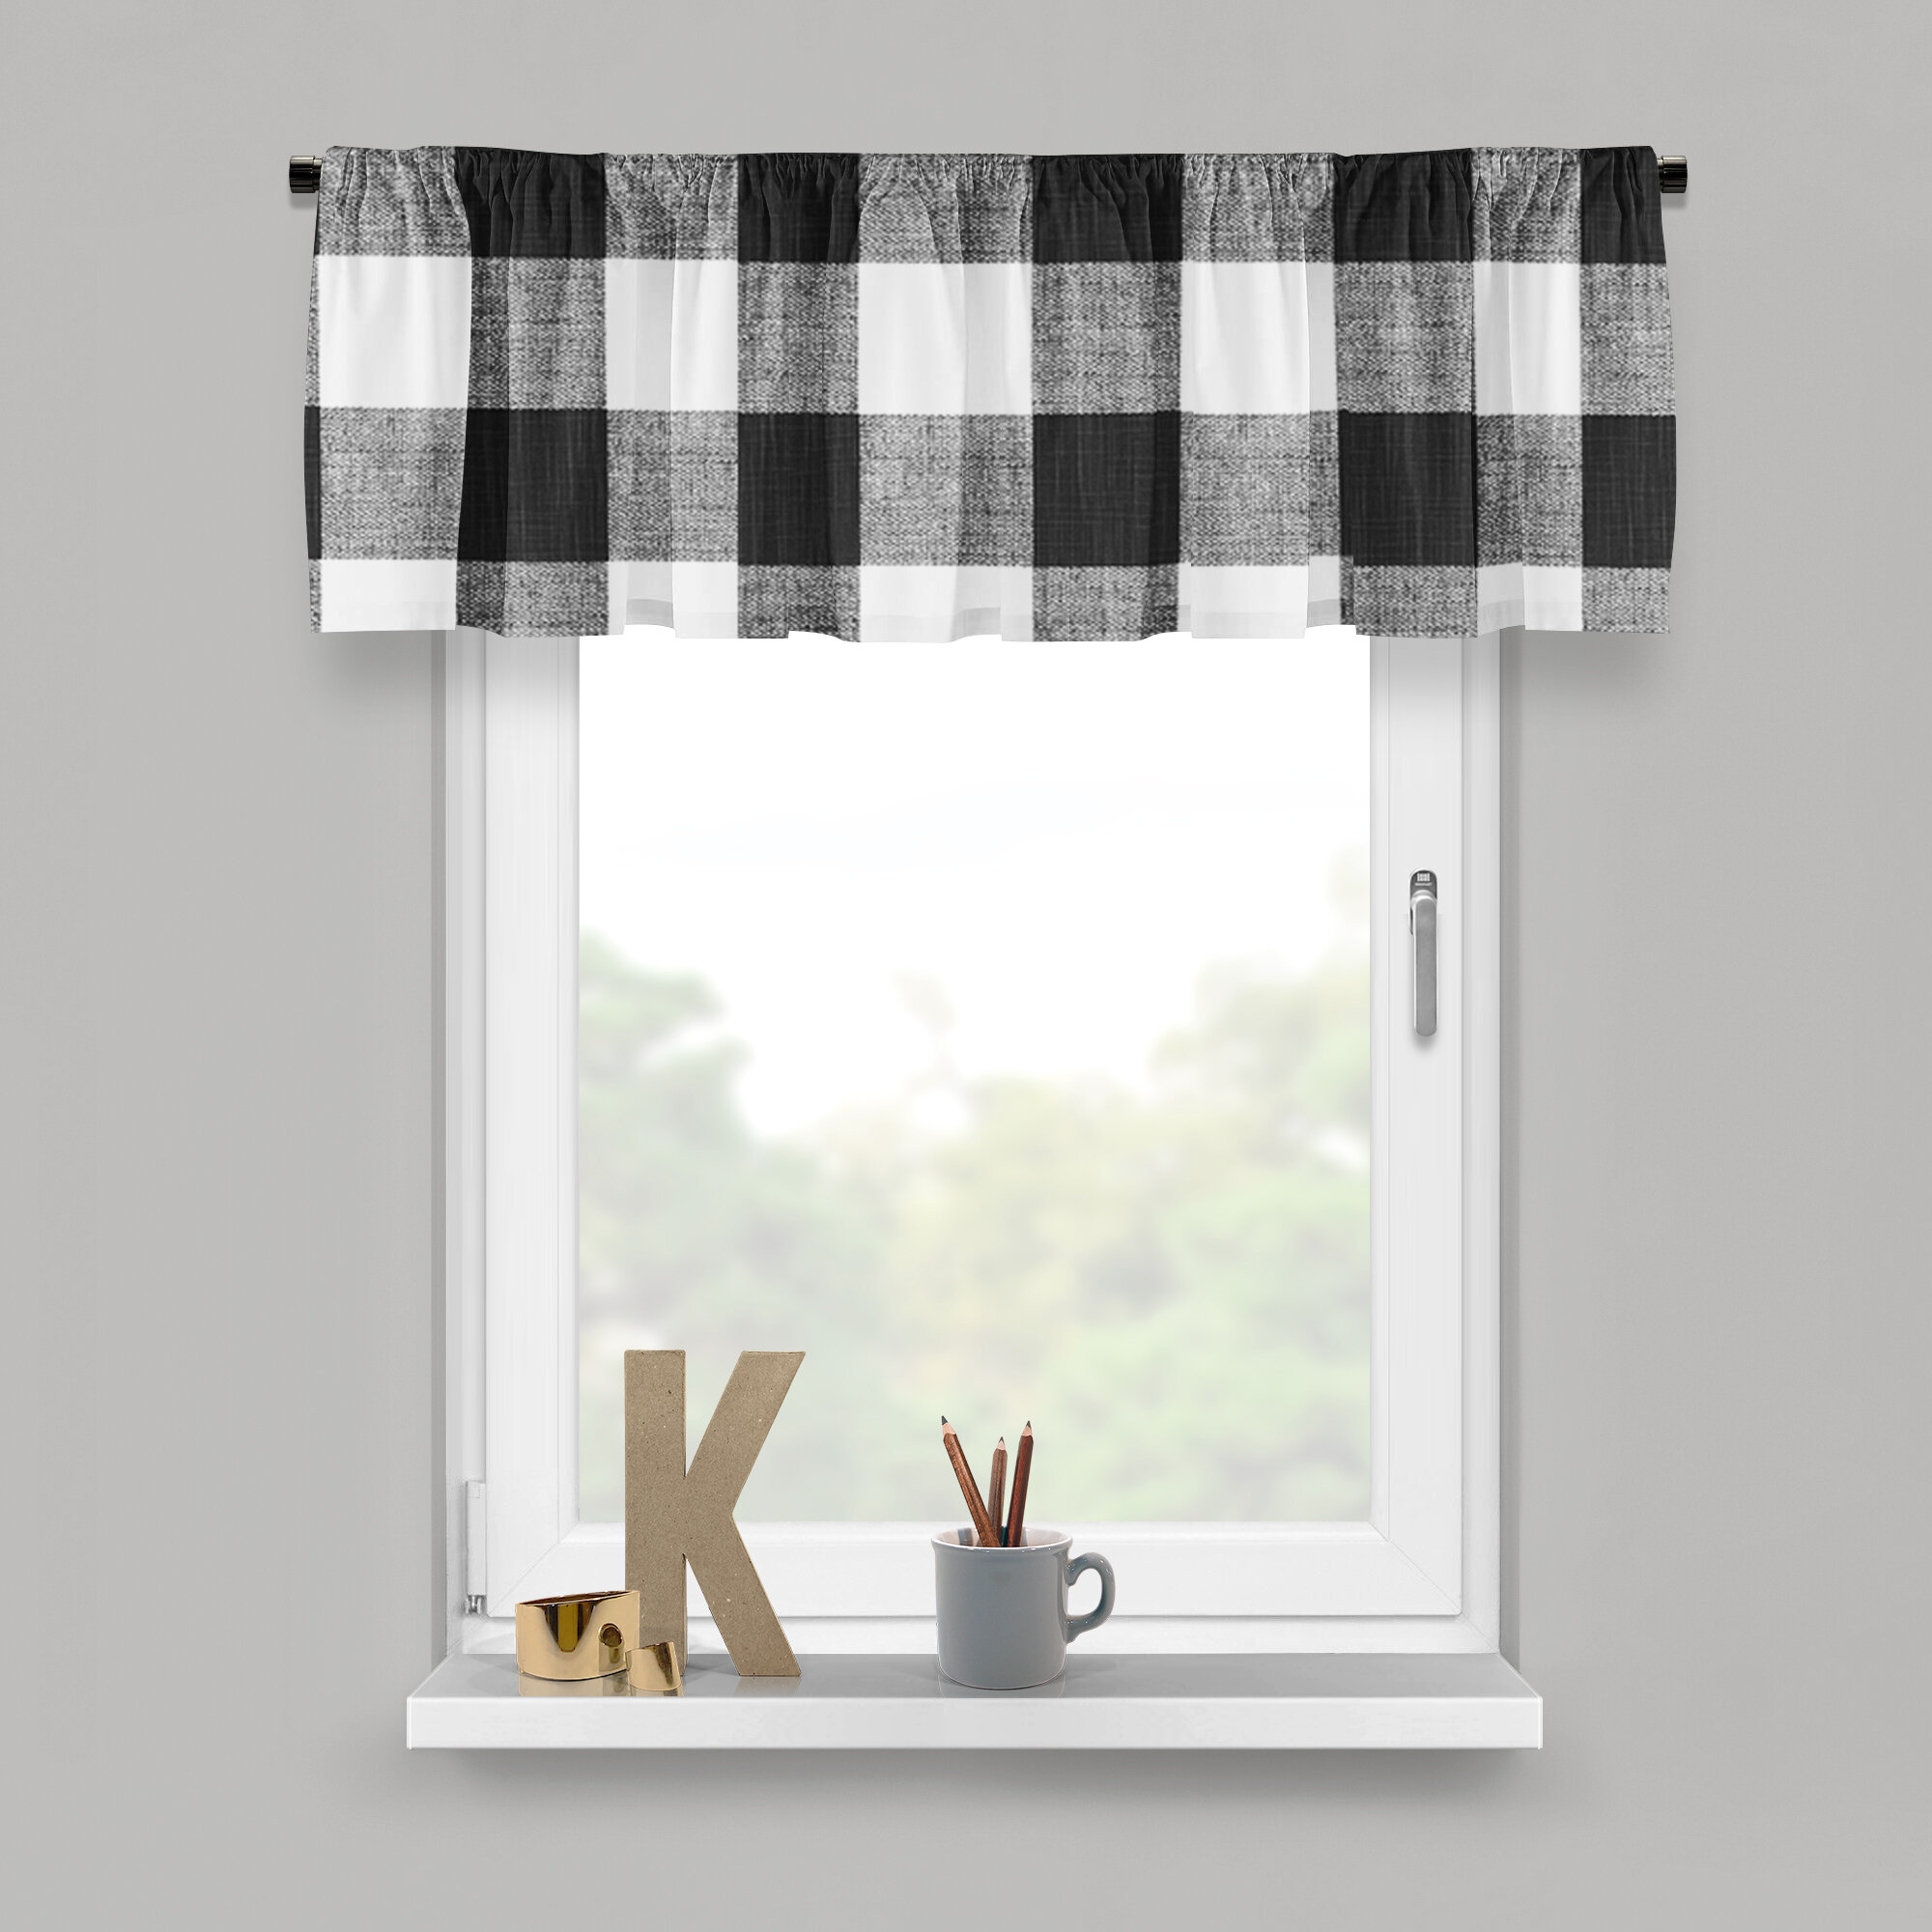 Lace Window Swag Pairs Valances or Tiers White or Ivory Cleremont Livingroom